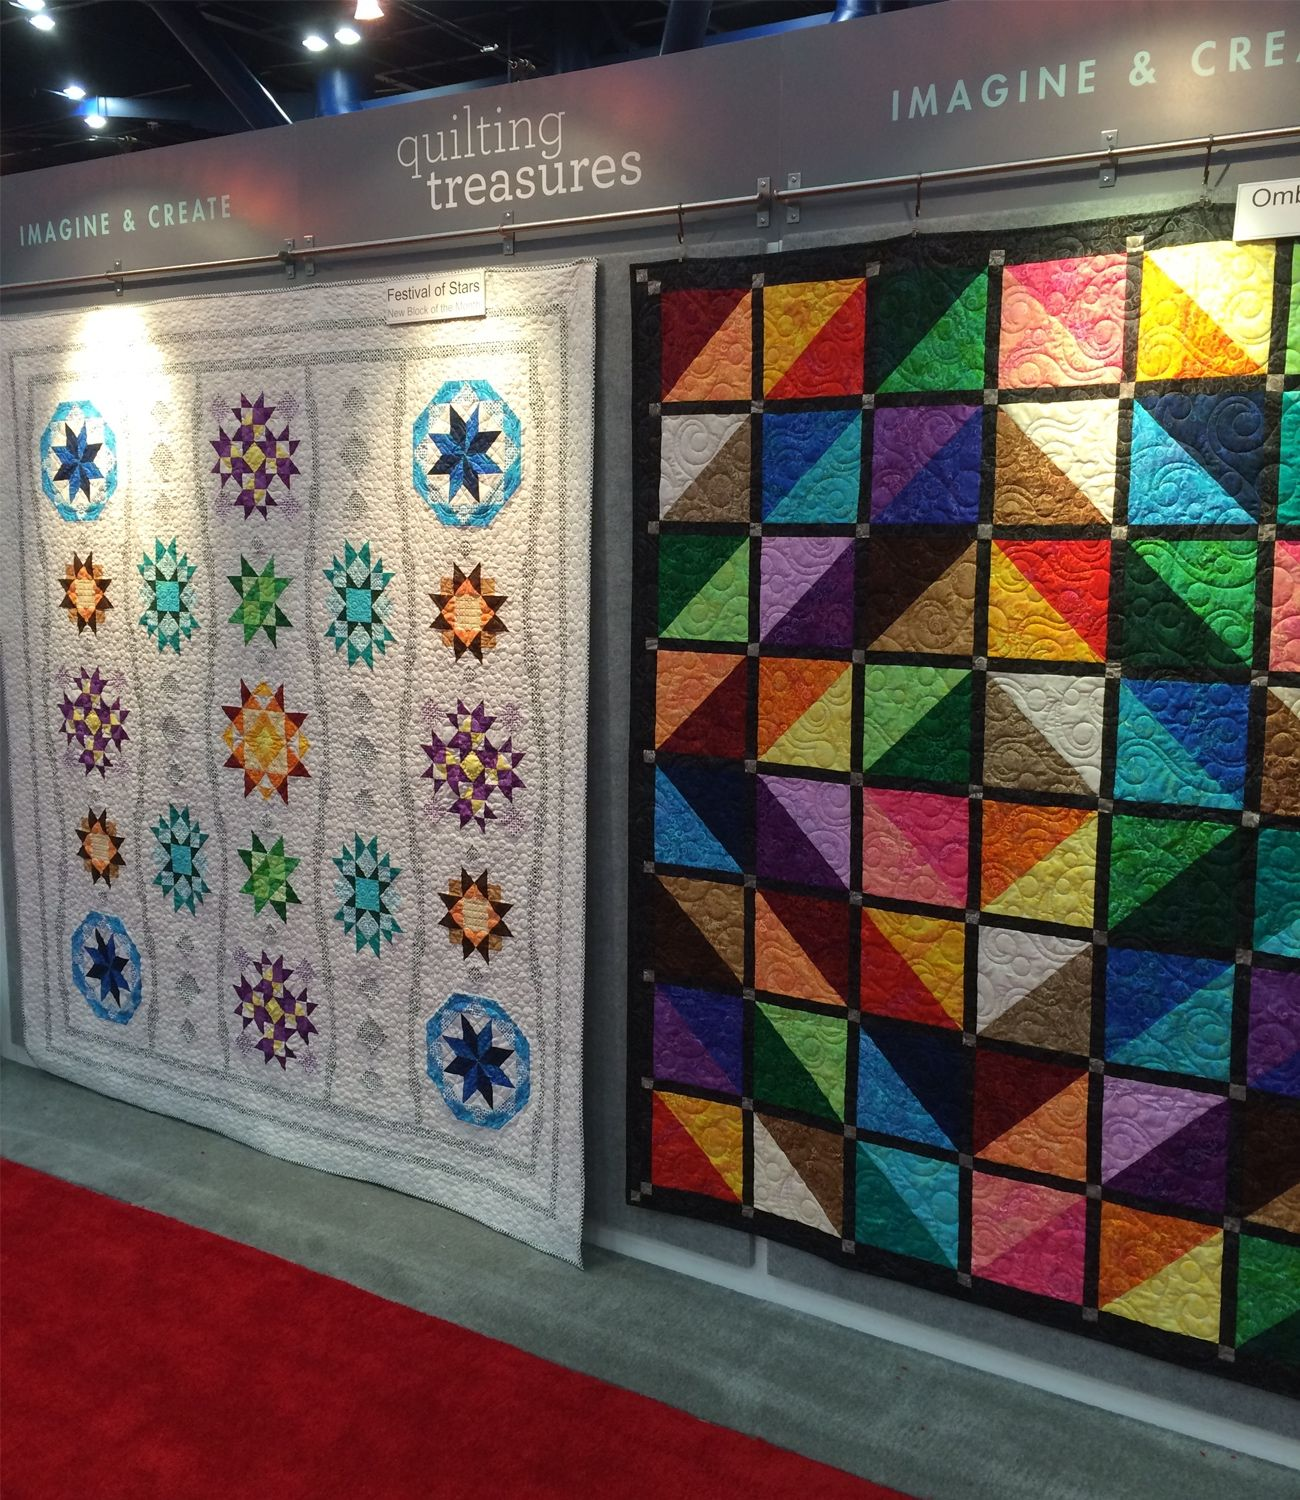 blogimage21.jpg (1300×1500) | Stained Glass Quilts | Pinterest